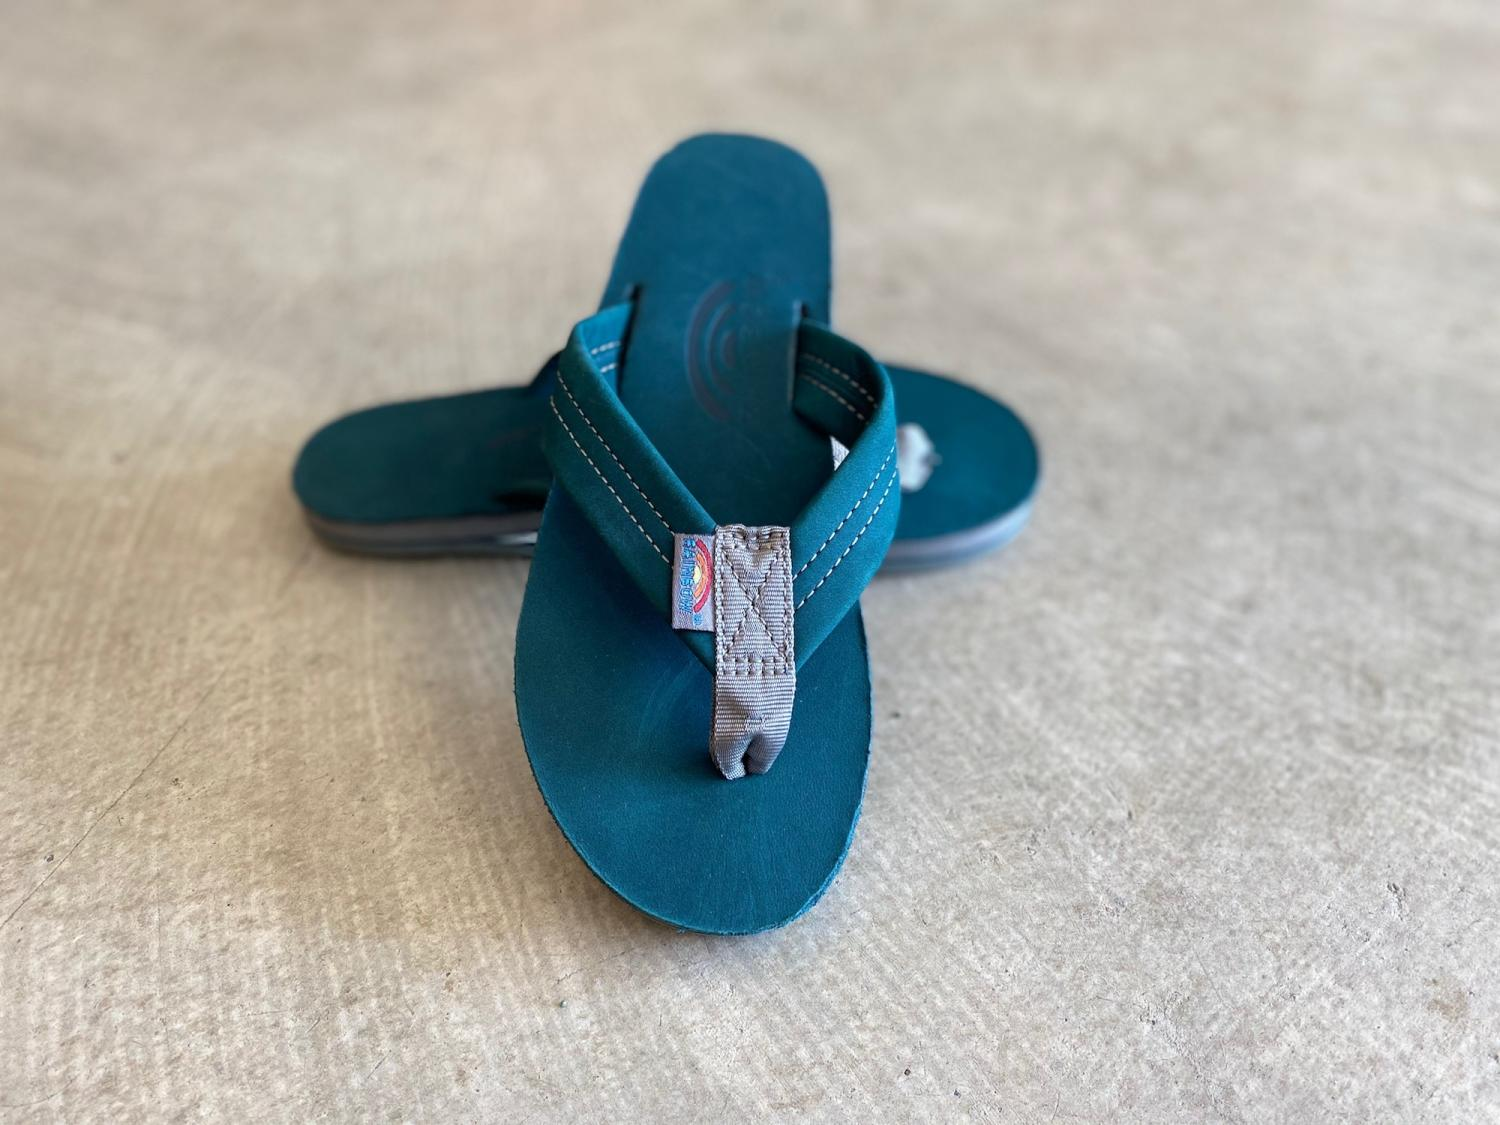 RAINBOW SANDALS WOMAN'S TURQUOISE BLUE ALTS Single Layer